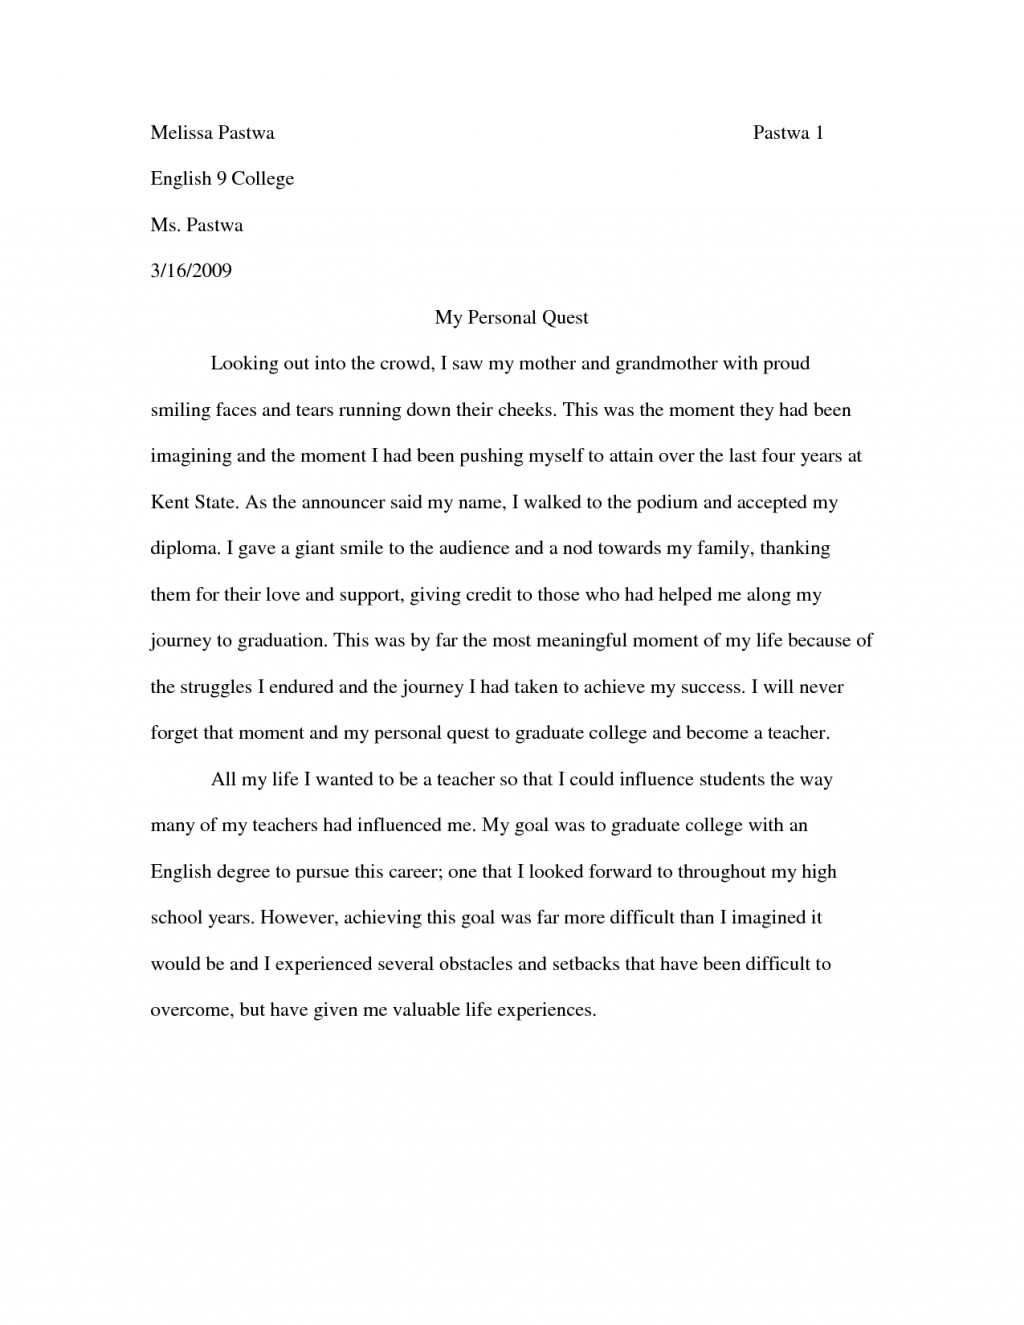 009 Writing Narrative Essay Example Dialogue Of L Amazing A About Being Judged Quizlet Powerpoint Large